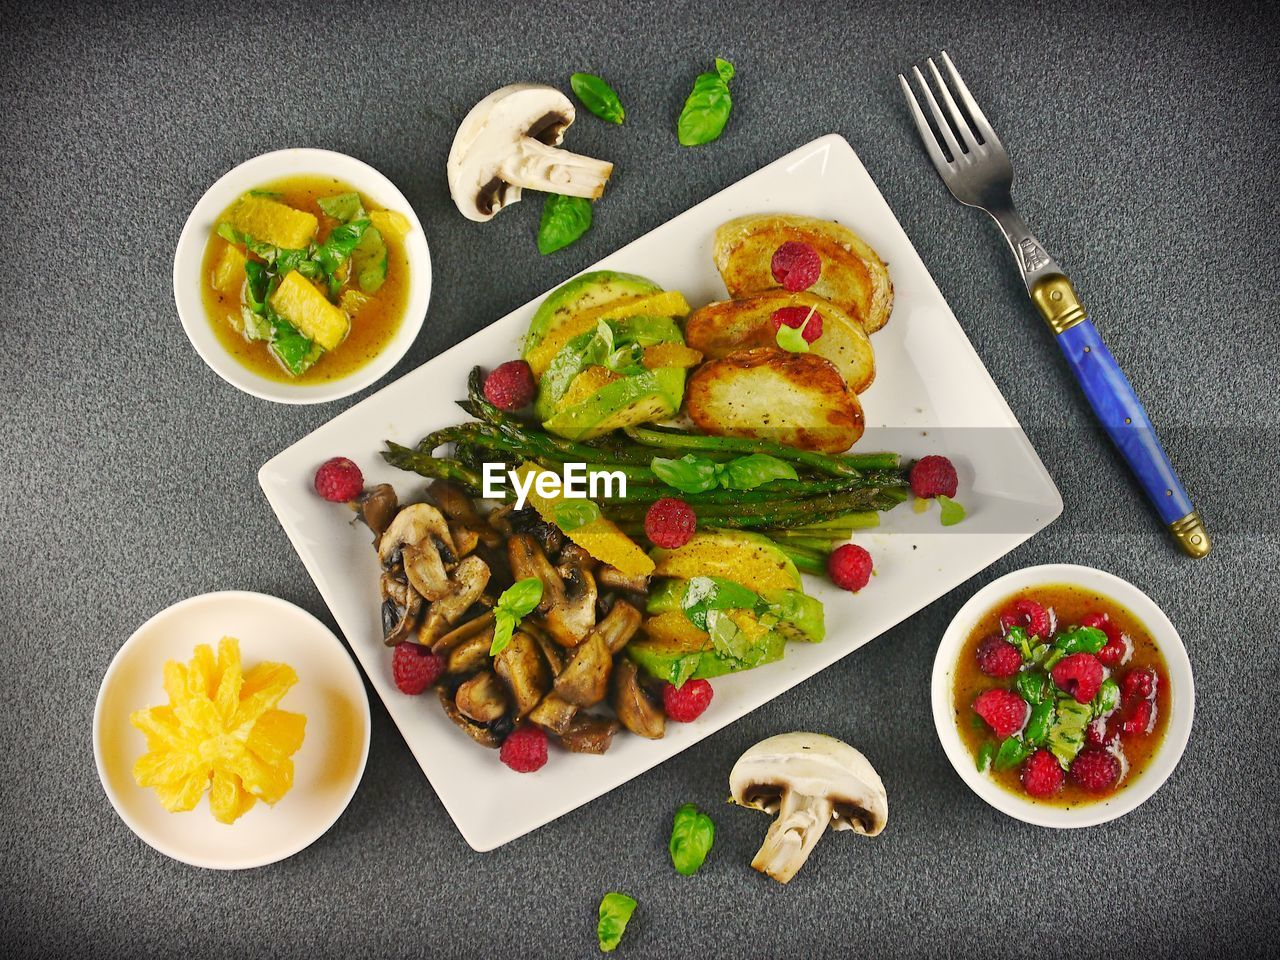 food and drink, food, freshness, healthy eating, ready-to-eat, vegetable, kitchen utensil, meal, fruit, indoors, eating utensil, wellbeing, table, fork, still life, plate, directly above, high angle view, no people, household equipment, table knife, garnish